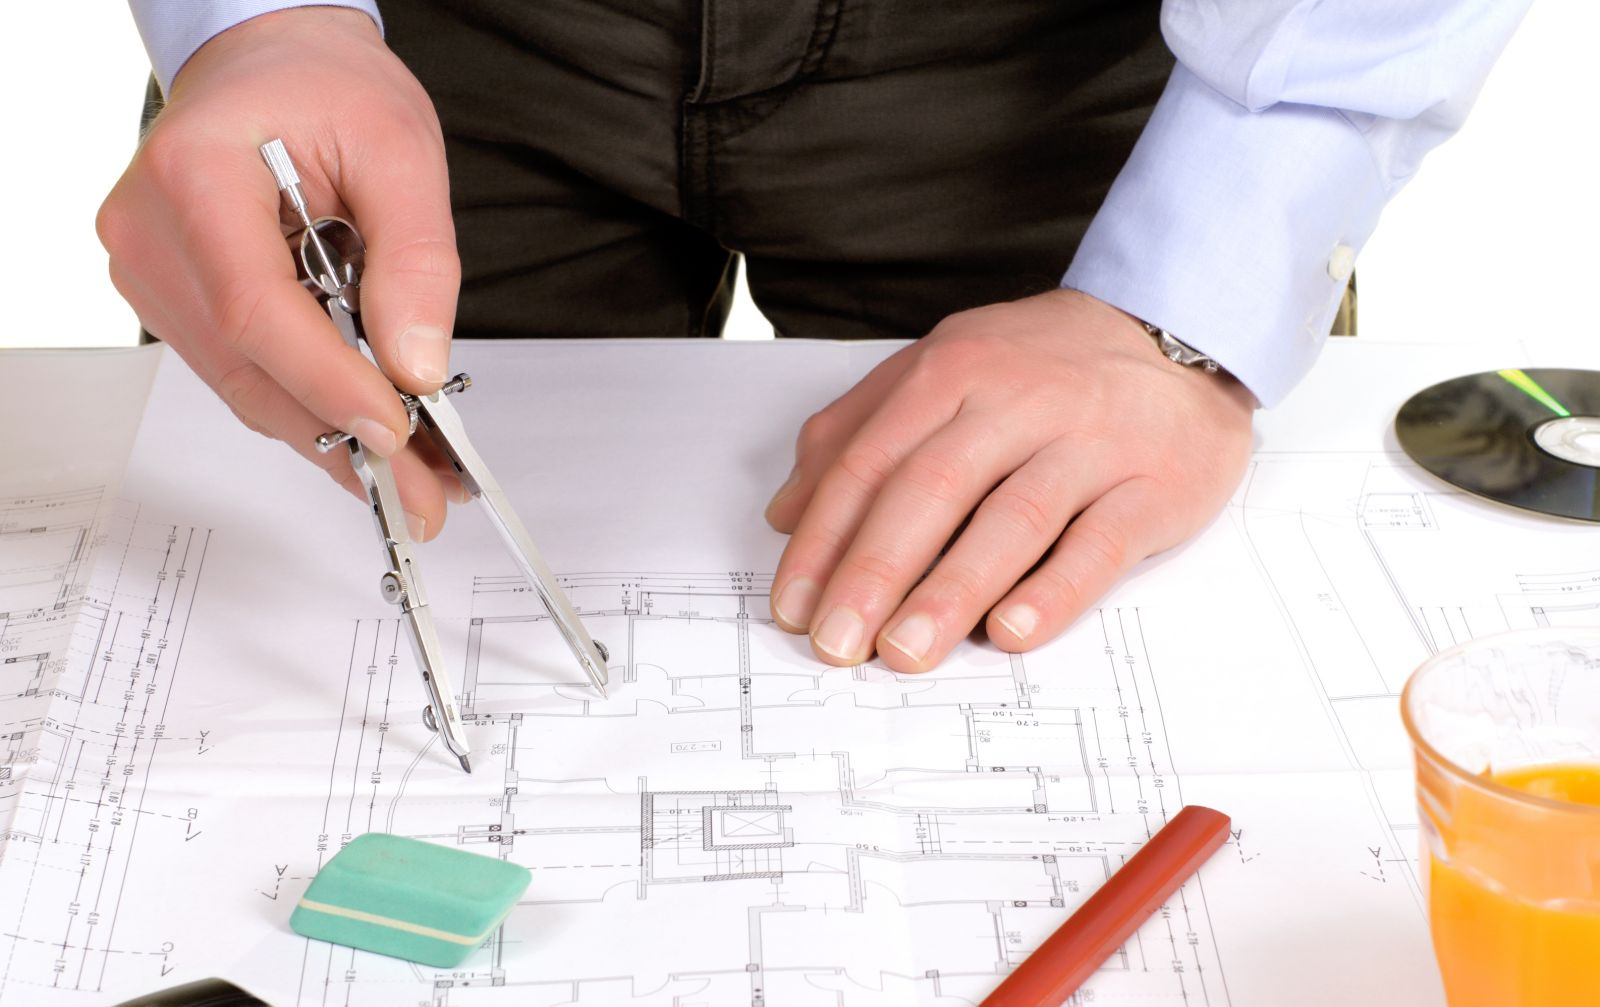 Beau Career: Architectural Design